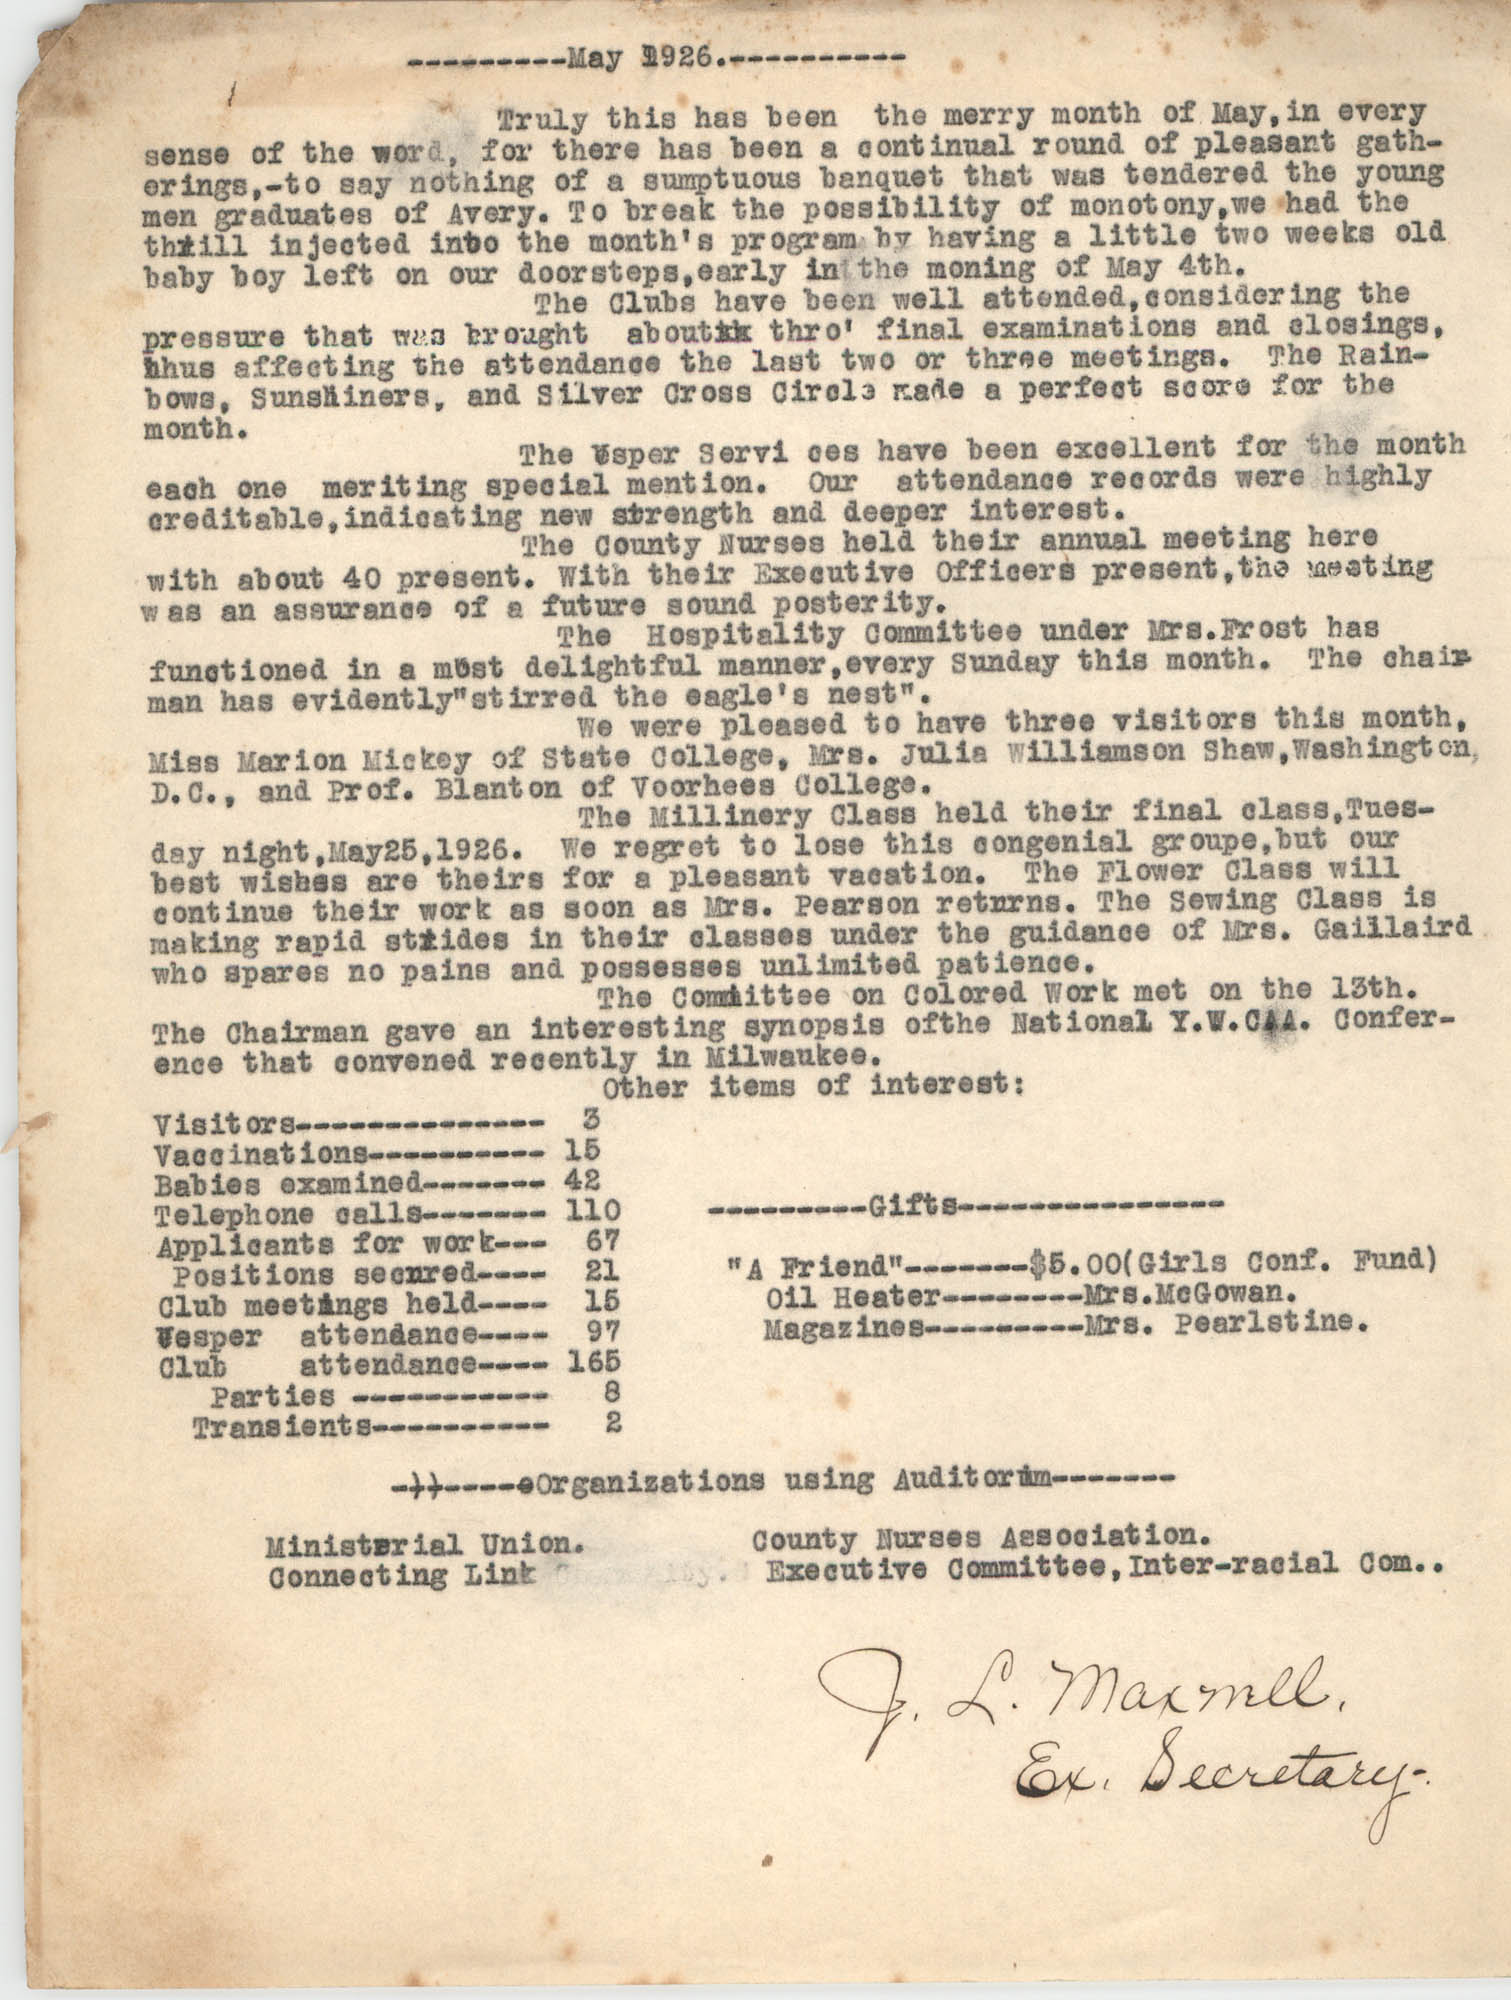 Monthly Report for the Coming Street Y.W.C.A., May 1926